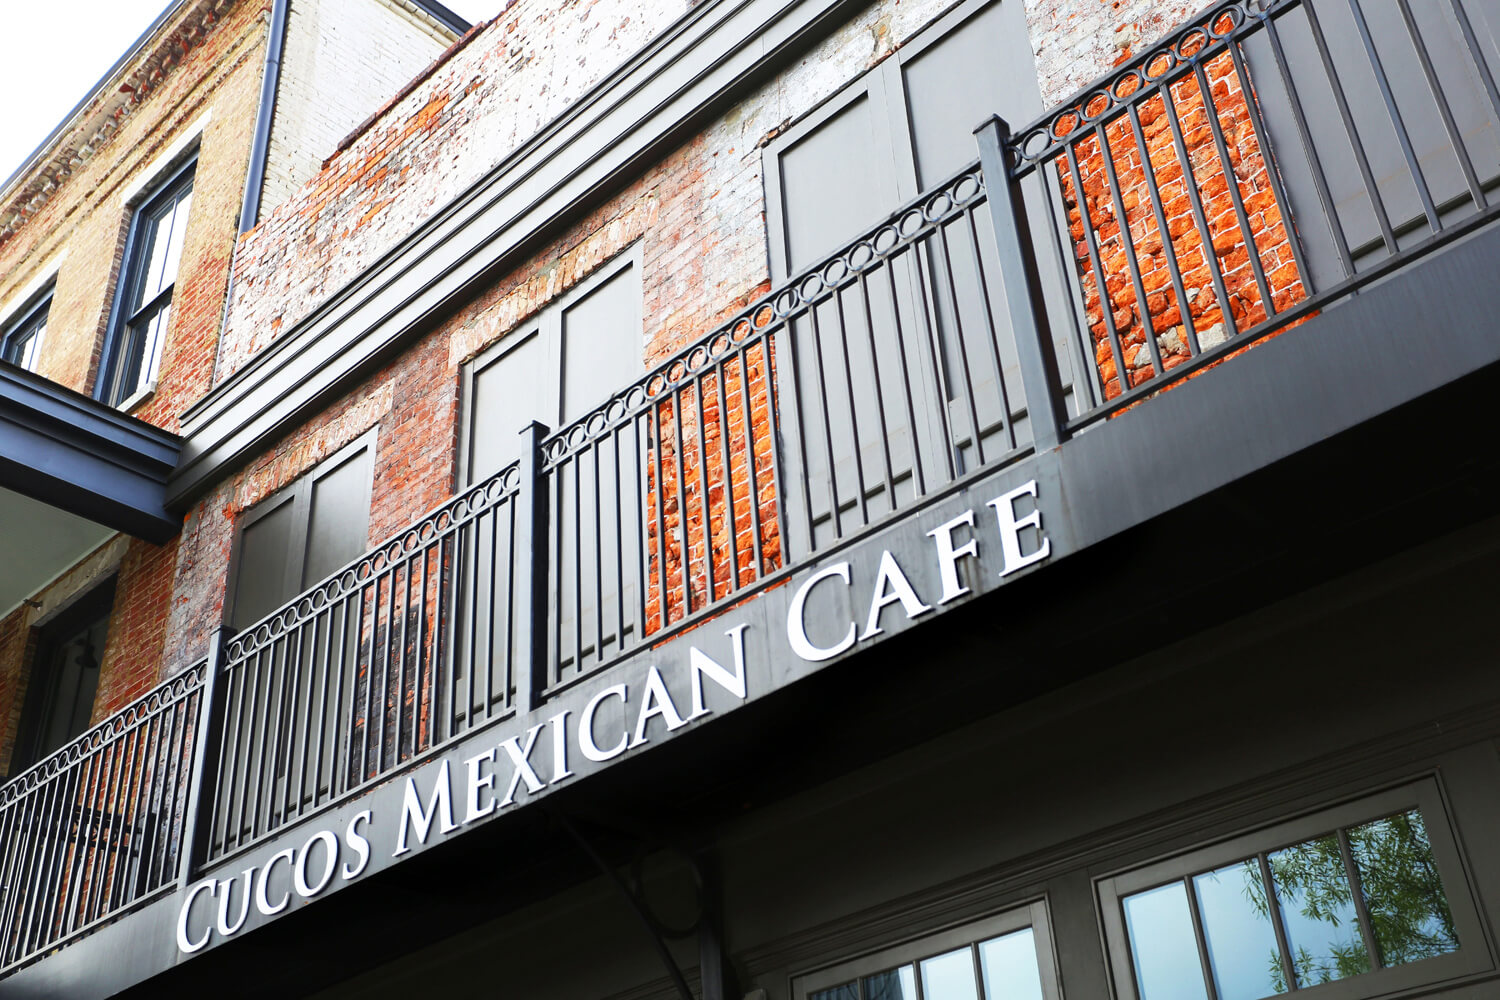 Cuco's Mexican Café Restaurant Designed by Foshee Architecture – Balcony Detail